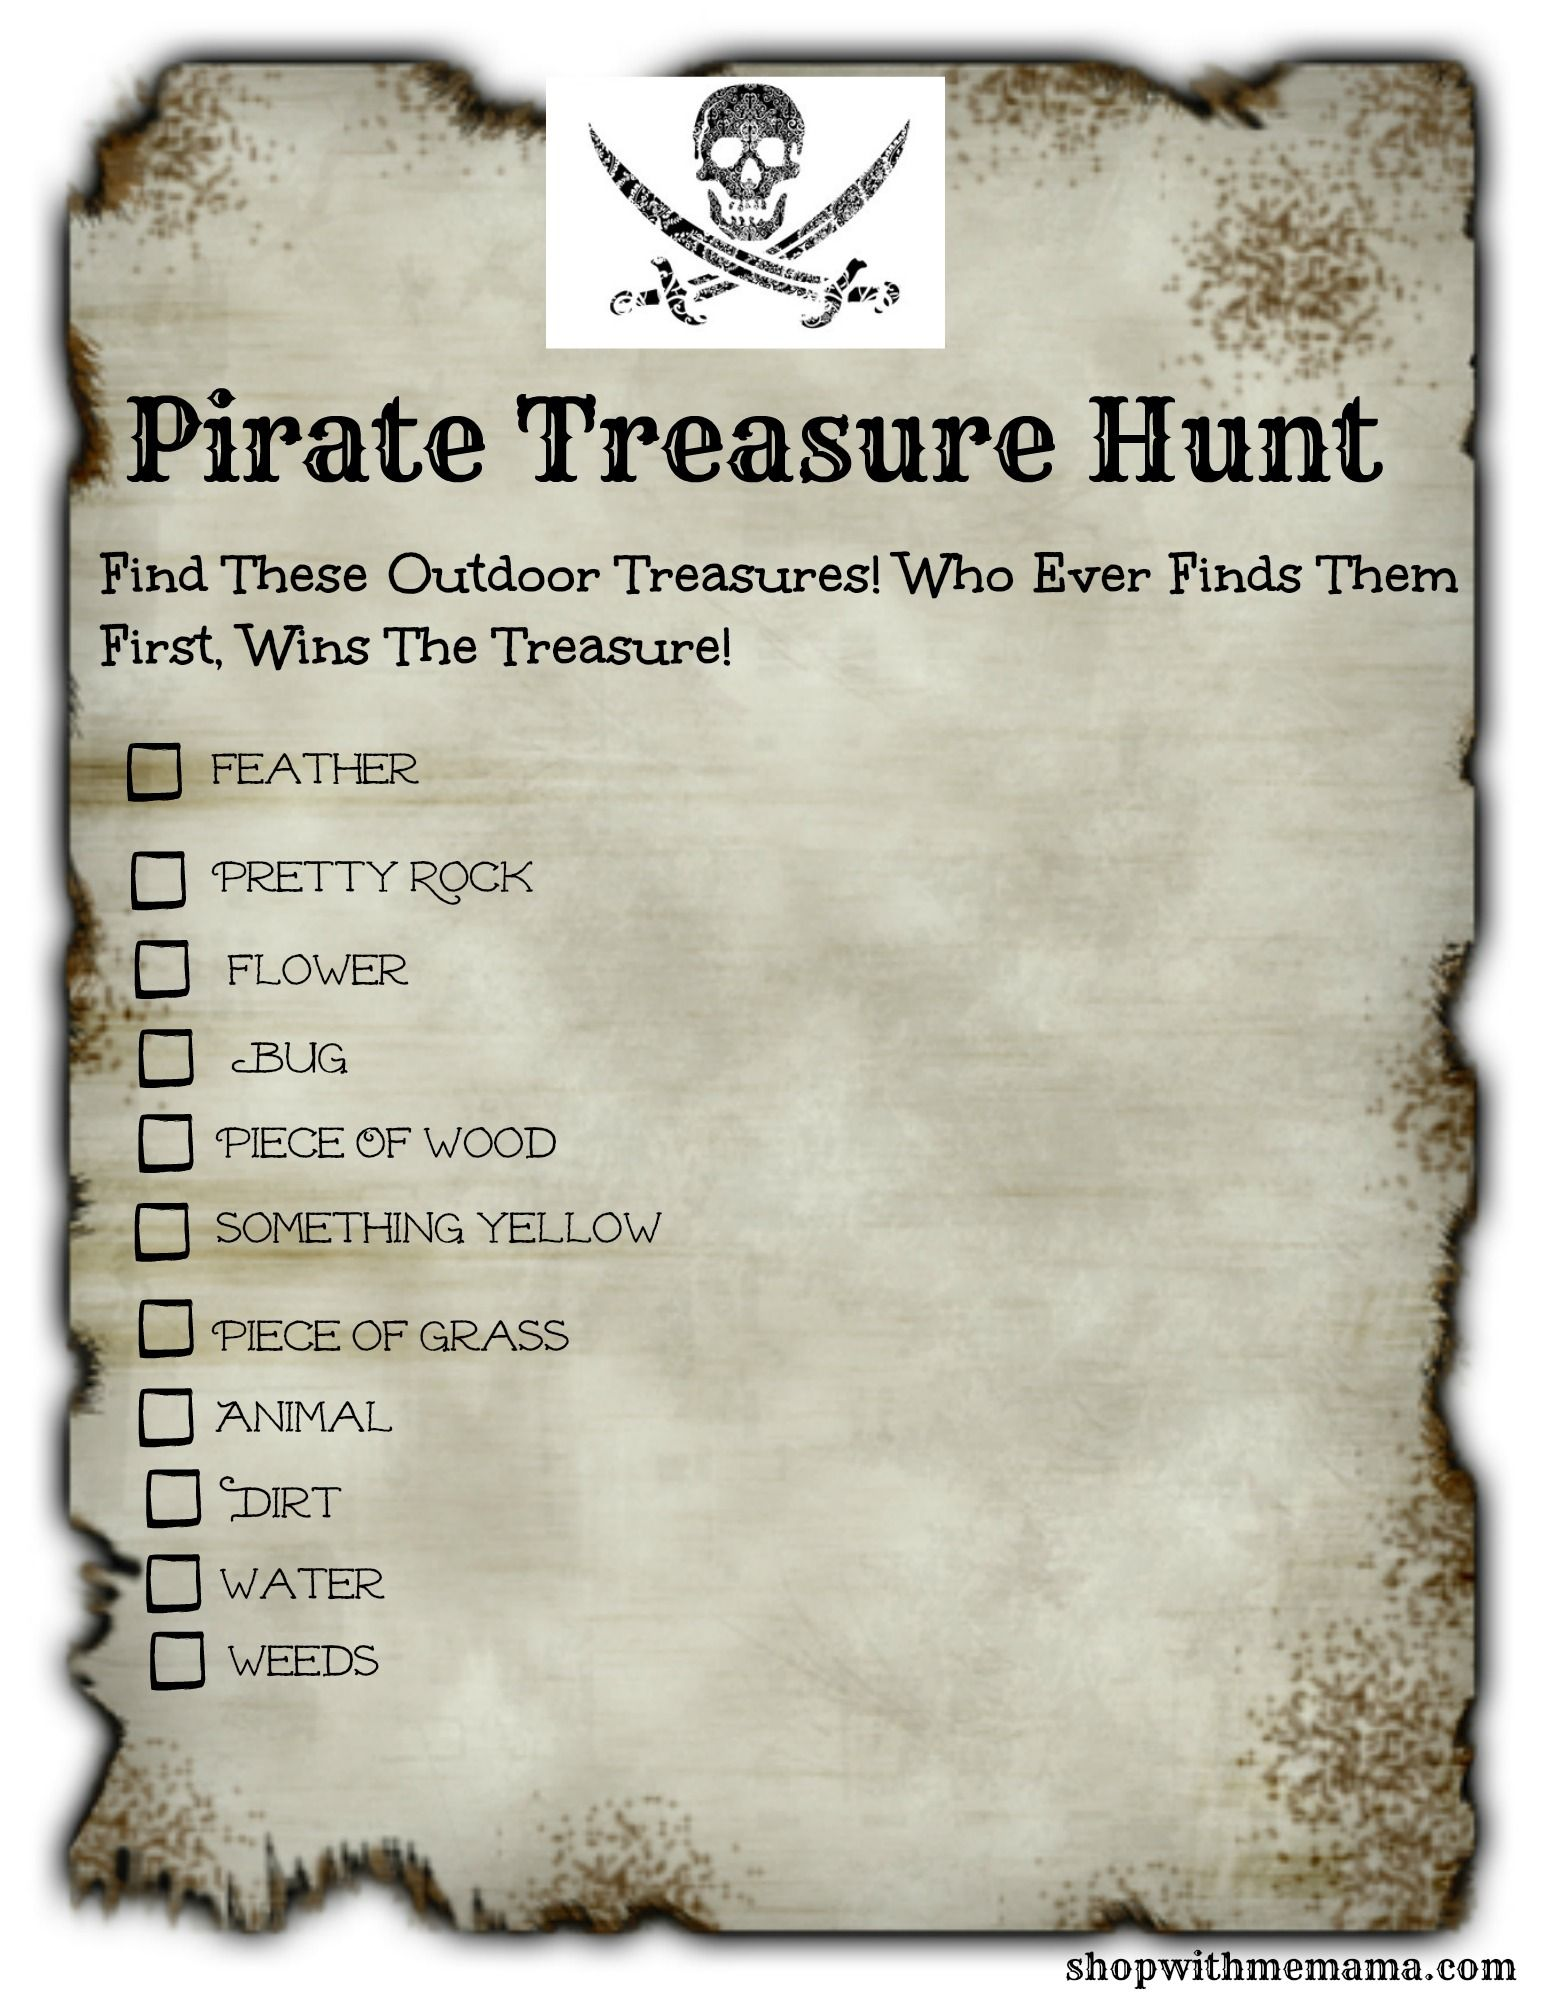 Kids Bored This Summer Print Out This Fun Pirate Treasure